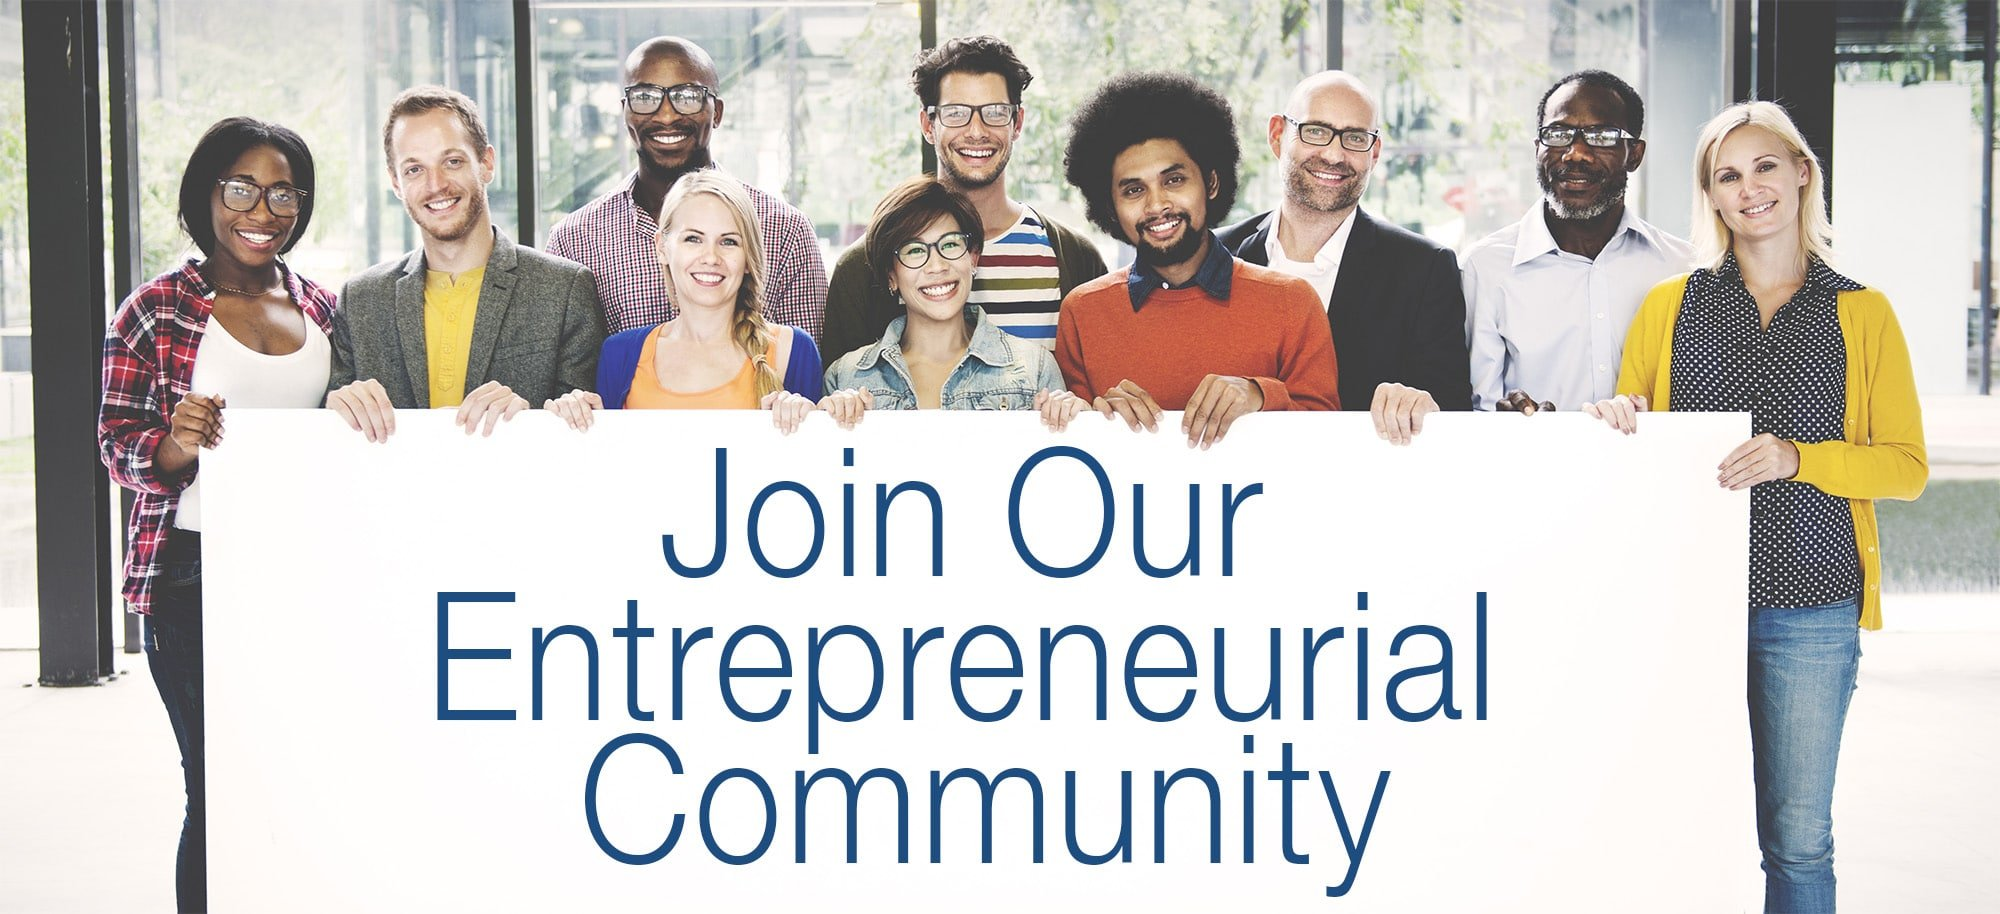 BACD - Join our entrepreneurial community